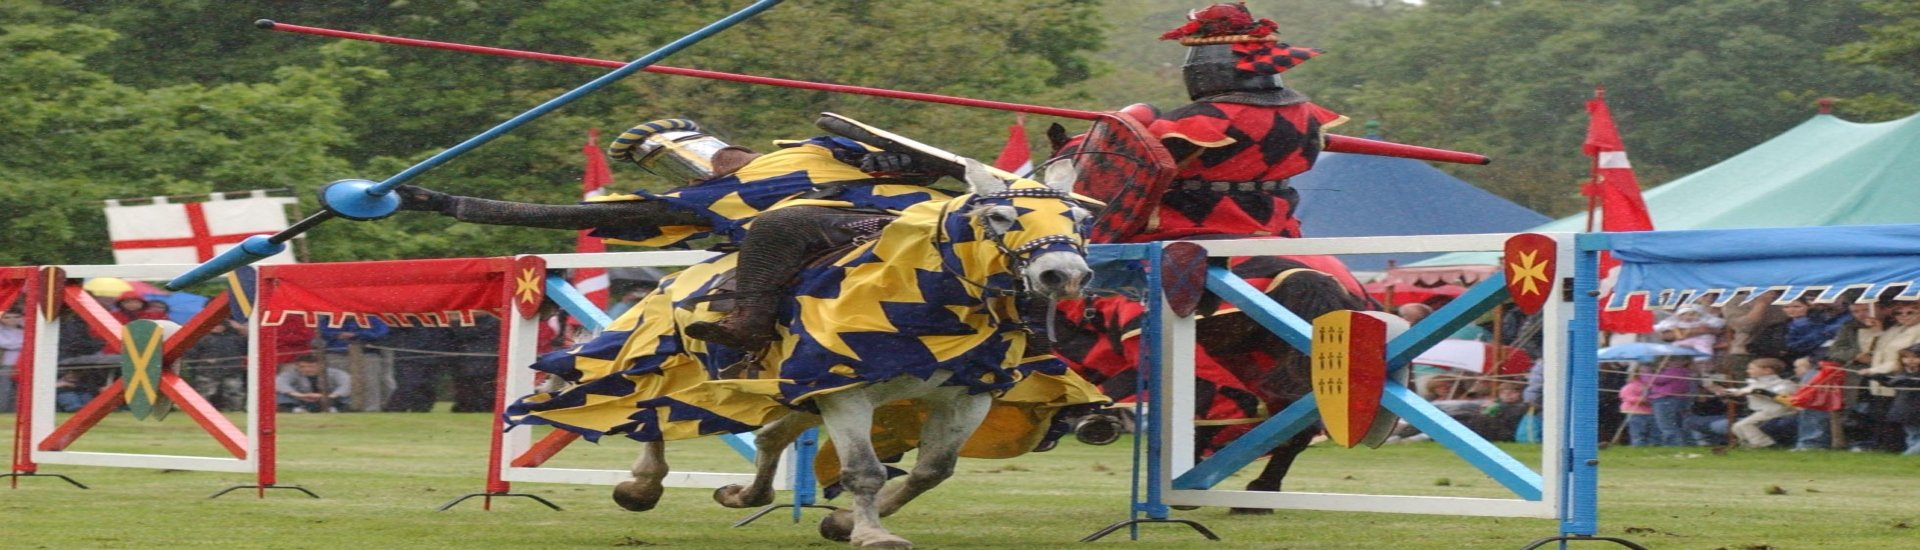 Jousting at Warwick Castle - Rugby Tours To Warwick